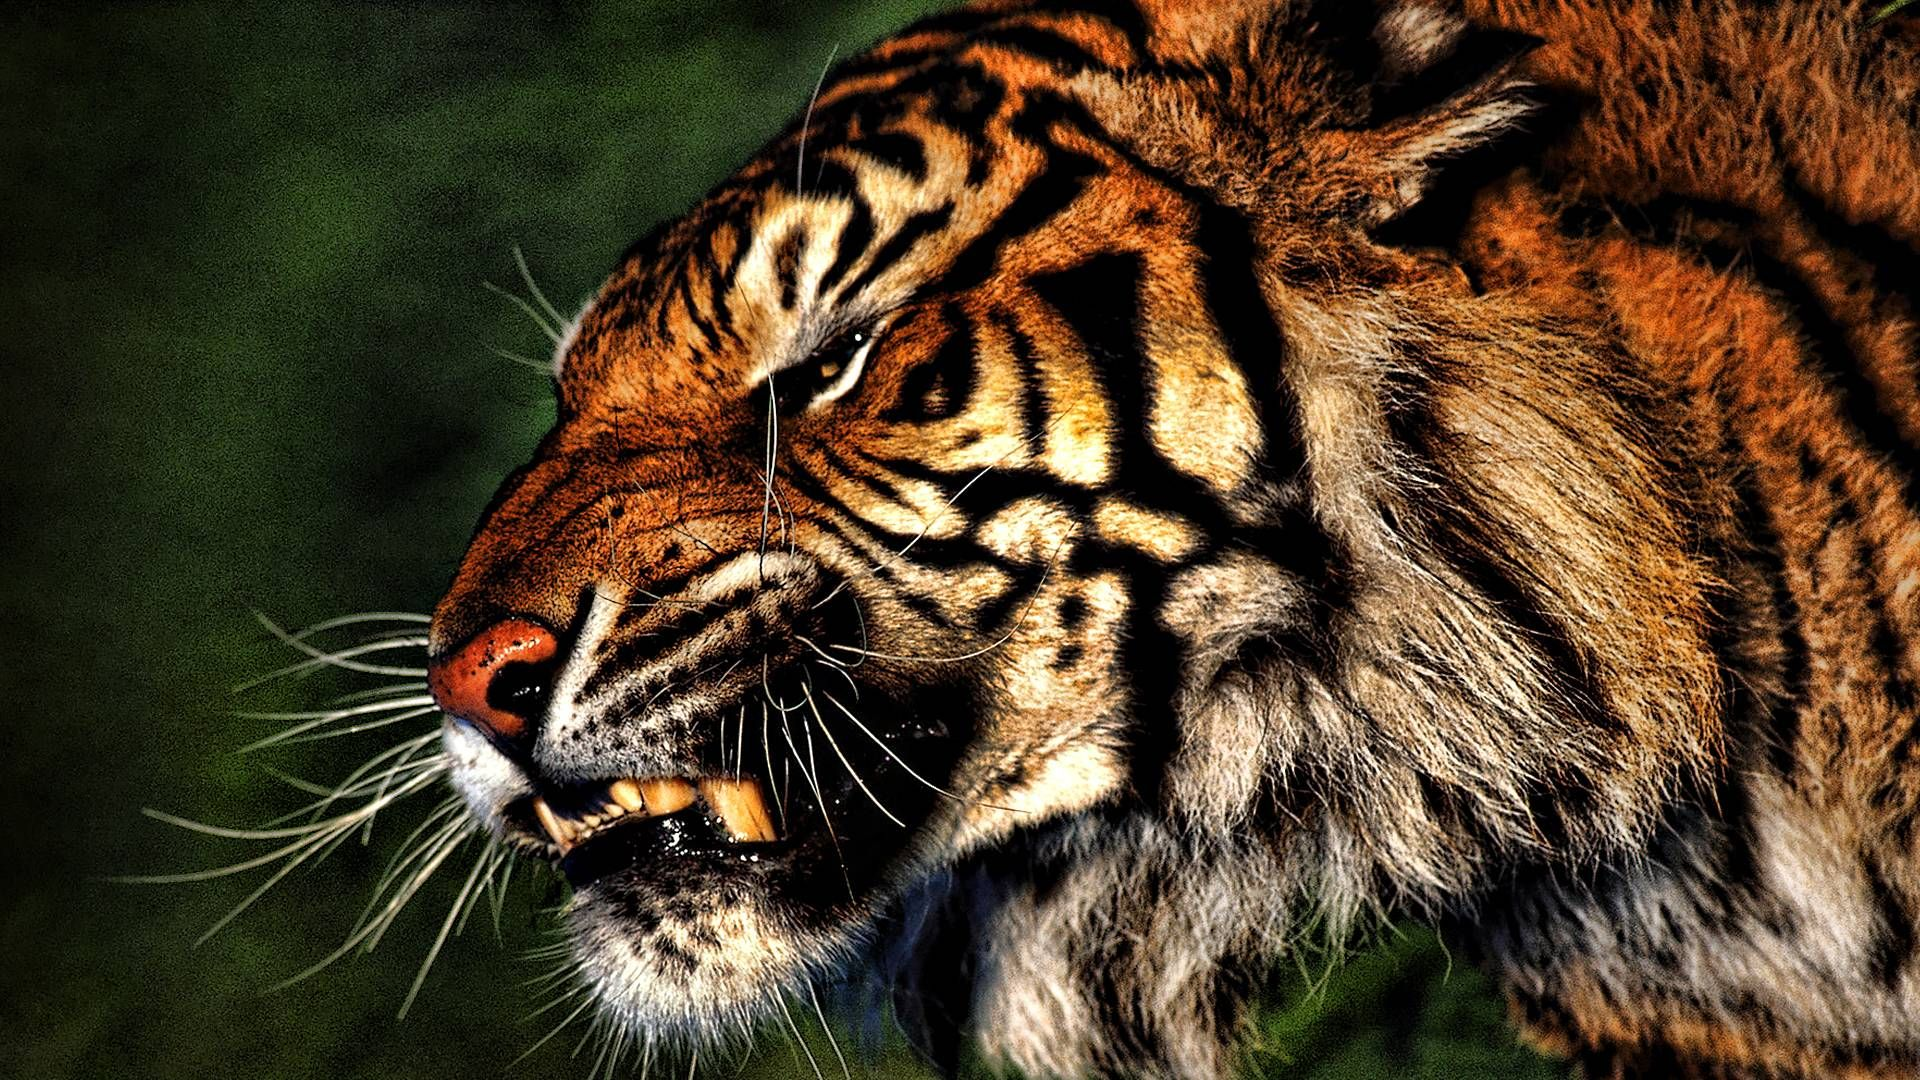 Tiger Hd Wallpapers Wallpaper Cave Epic Car Wallpapers Animals